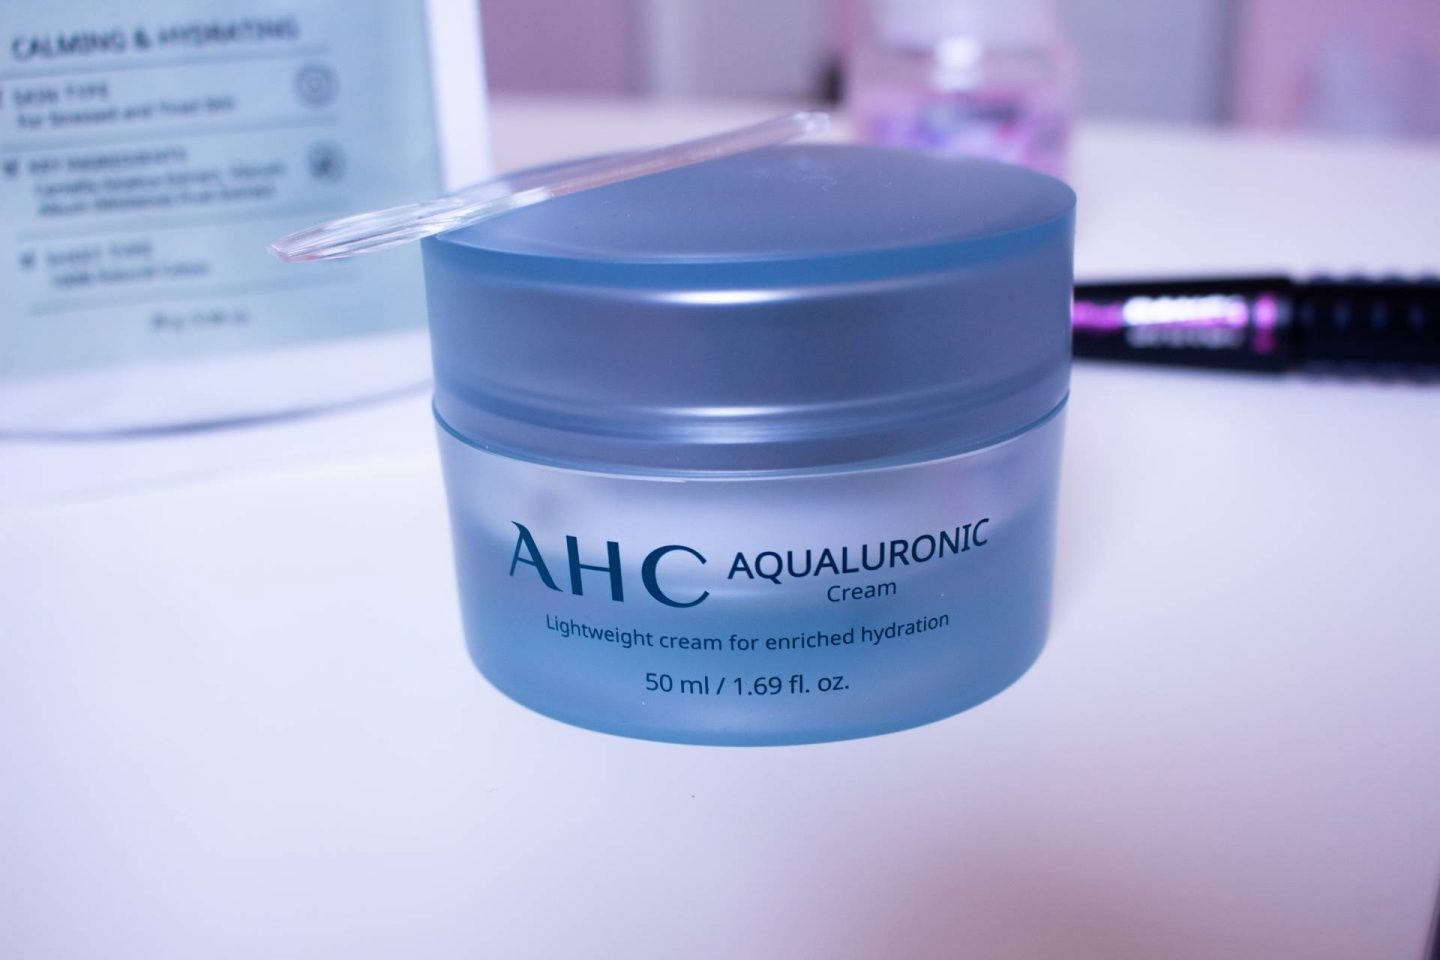 AHC Beauty Aqualuronic Cream